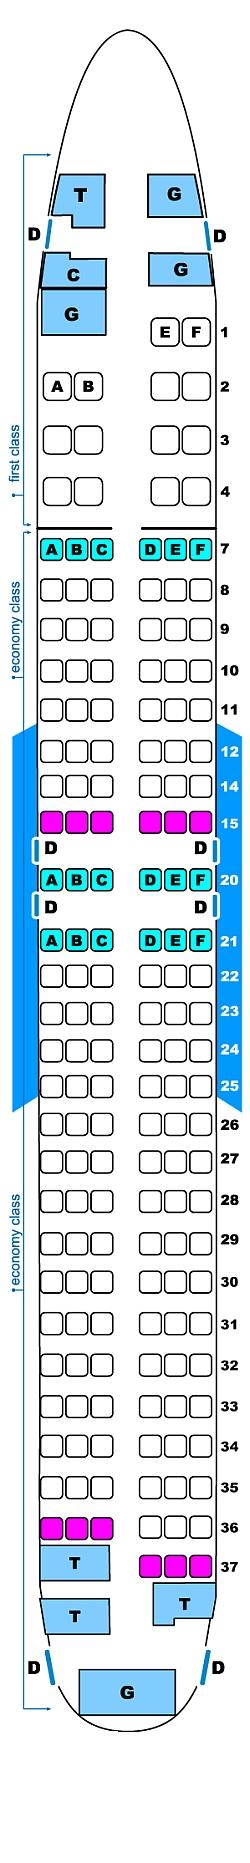 Seat map for Continental Airlines Boeing B737 800 (14/141)